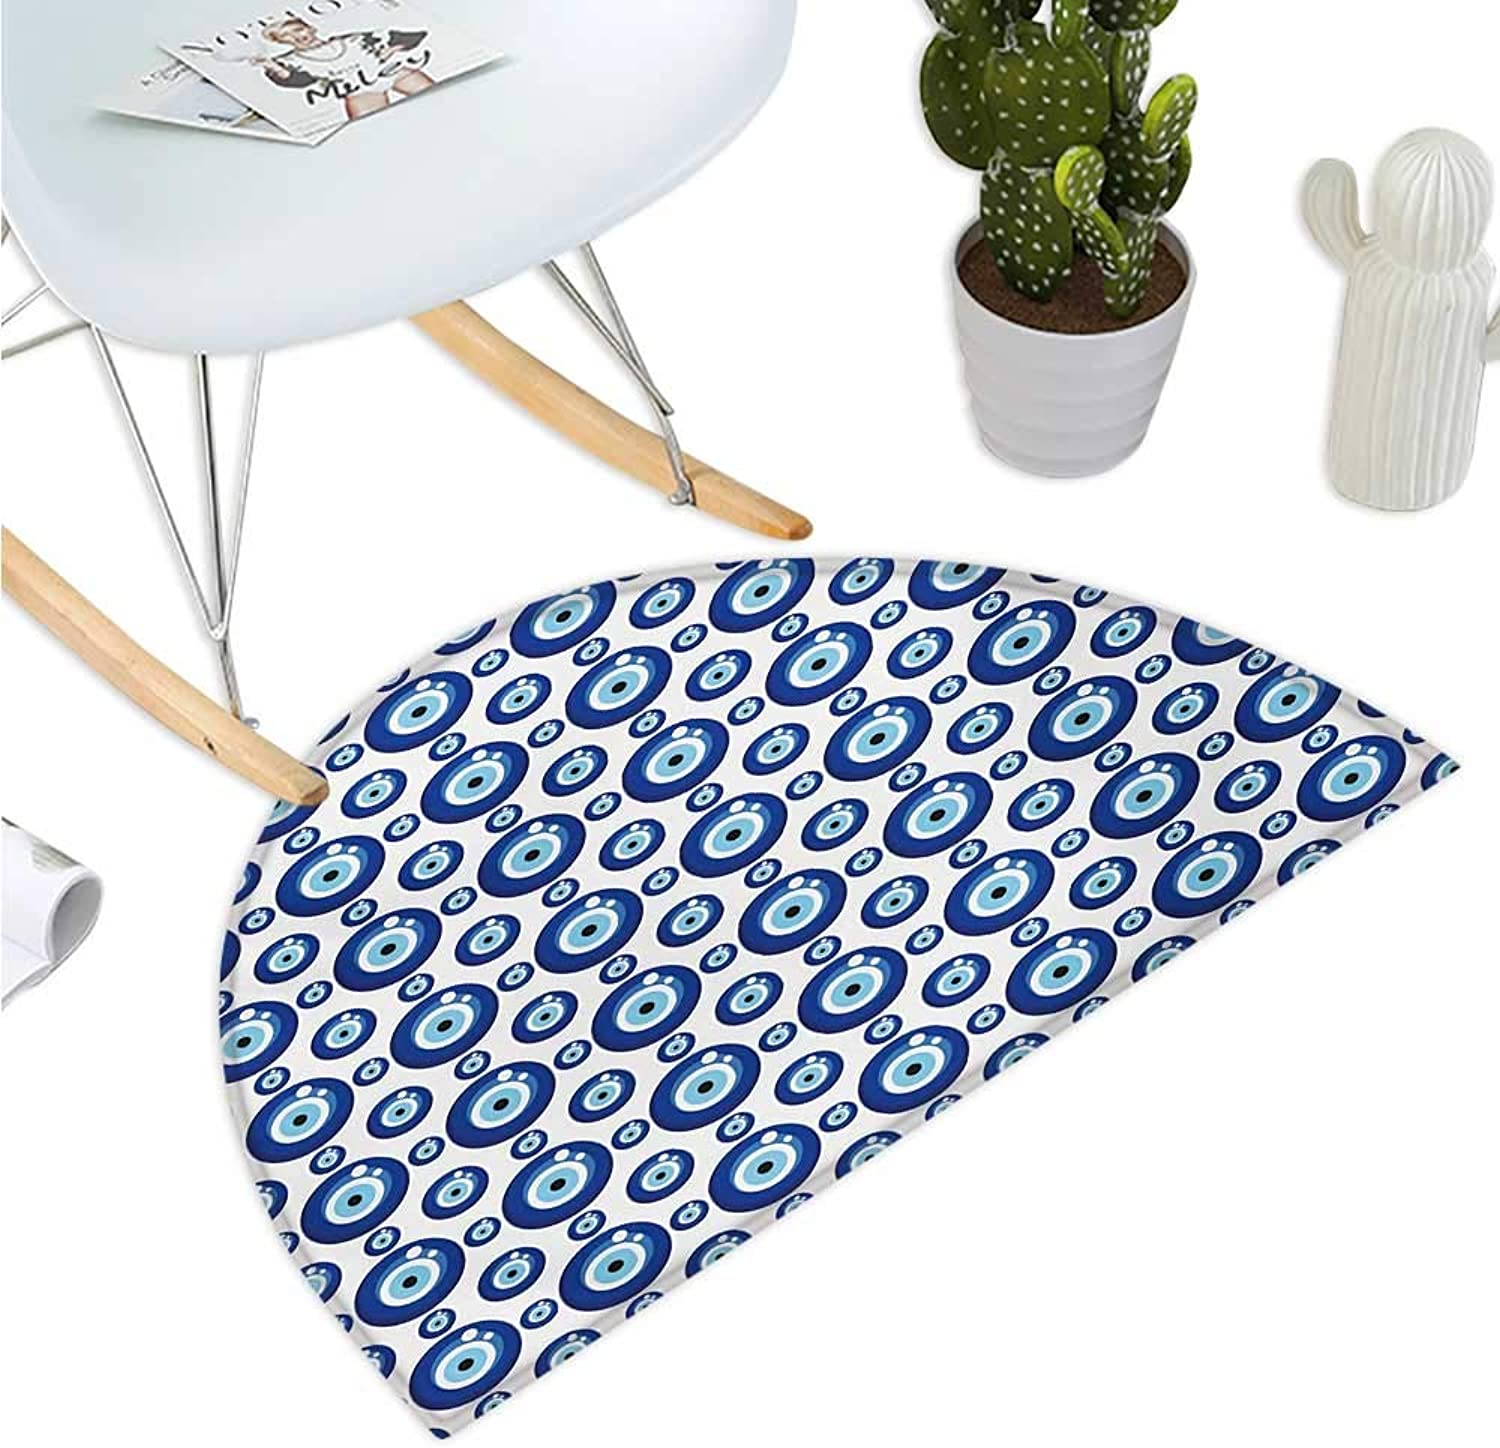 Evil Eye Semicircle Doormat Symmetrical Pattern All Seeing Eye Figures Superstitious Turkish Ethnic Entry Door Mat H 47.2  xD 70.8  bluee Pale bluee White